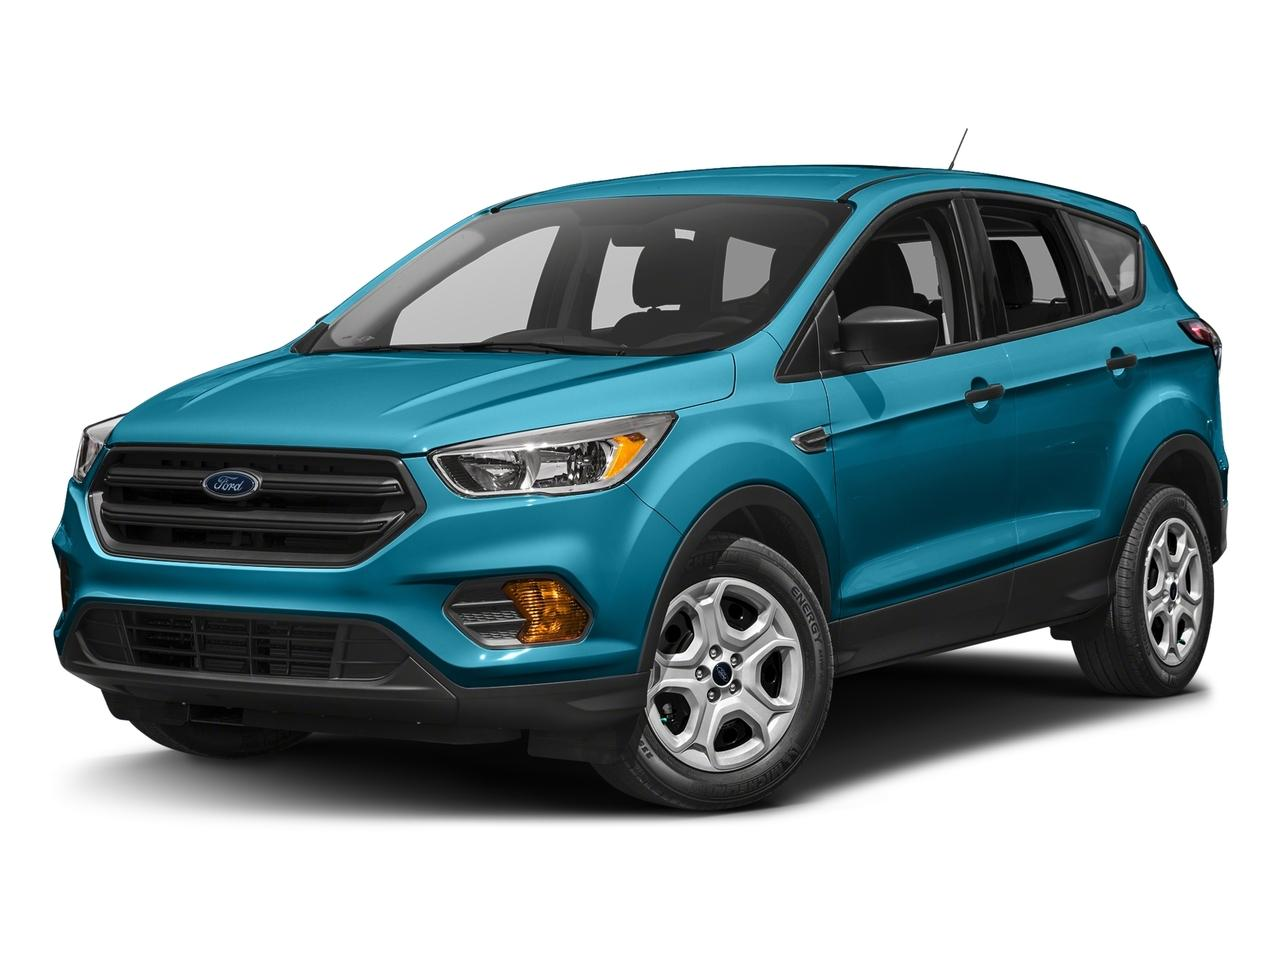 2017 Ford Escape Vehicle Photo in Champlain, NY 12919